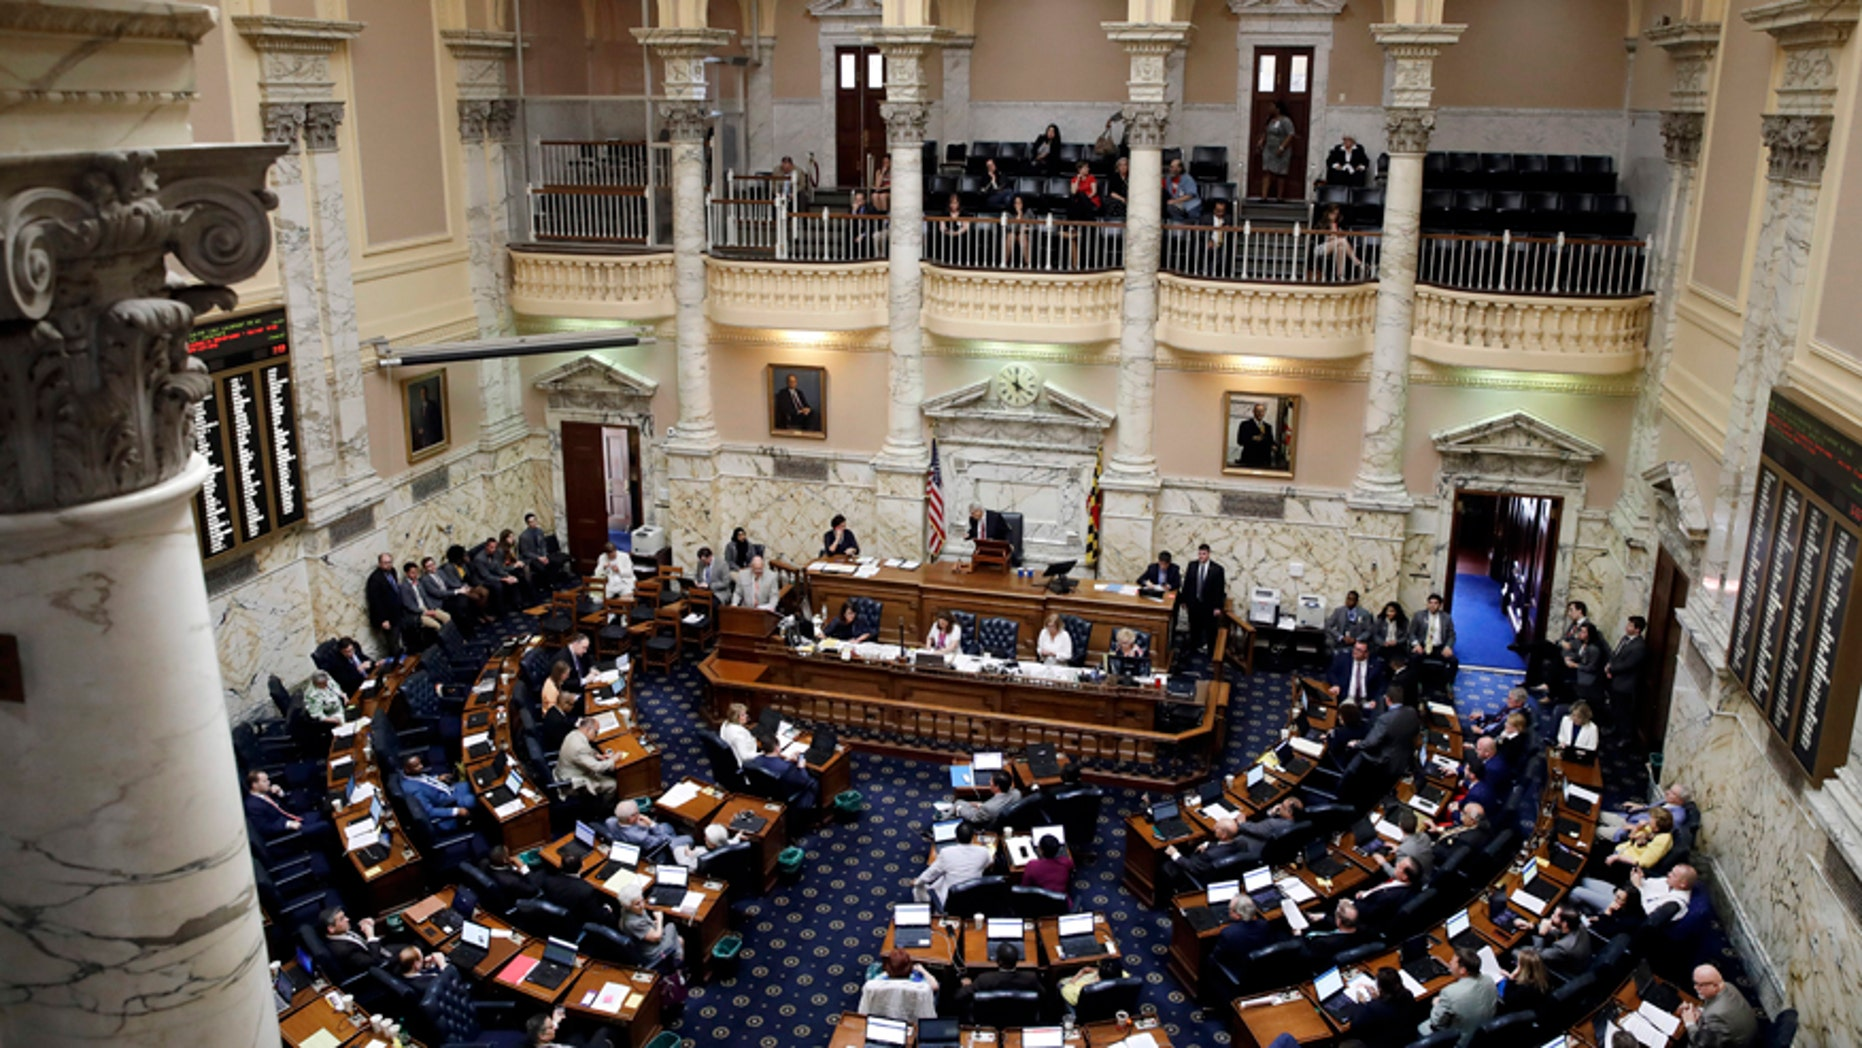 April 10, 2017: Members of the Maryland House of Delegates meet in the house chamber on the final day of the Maryland legislative session in Annapolis, Md.